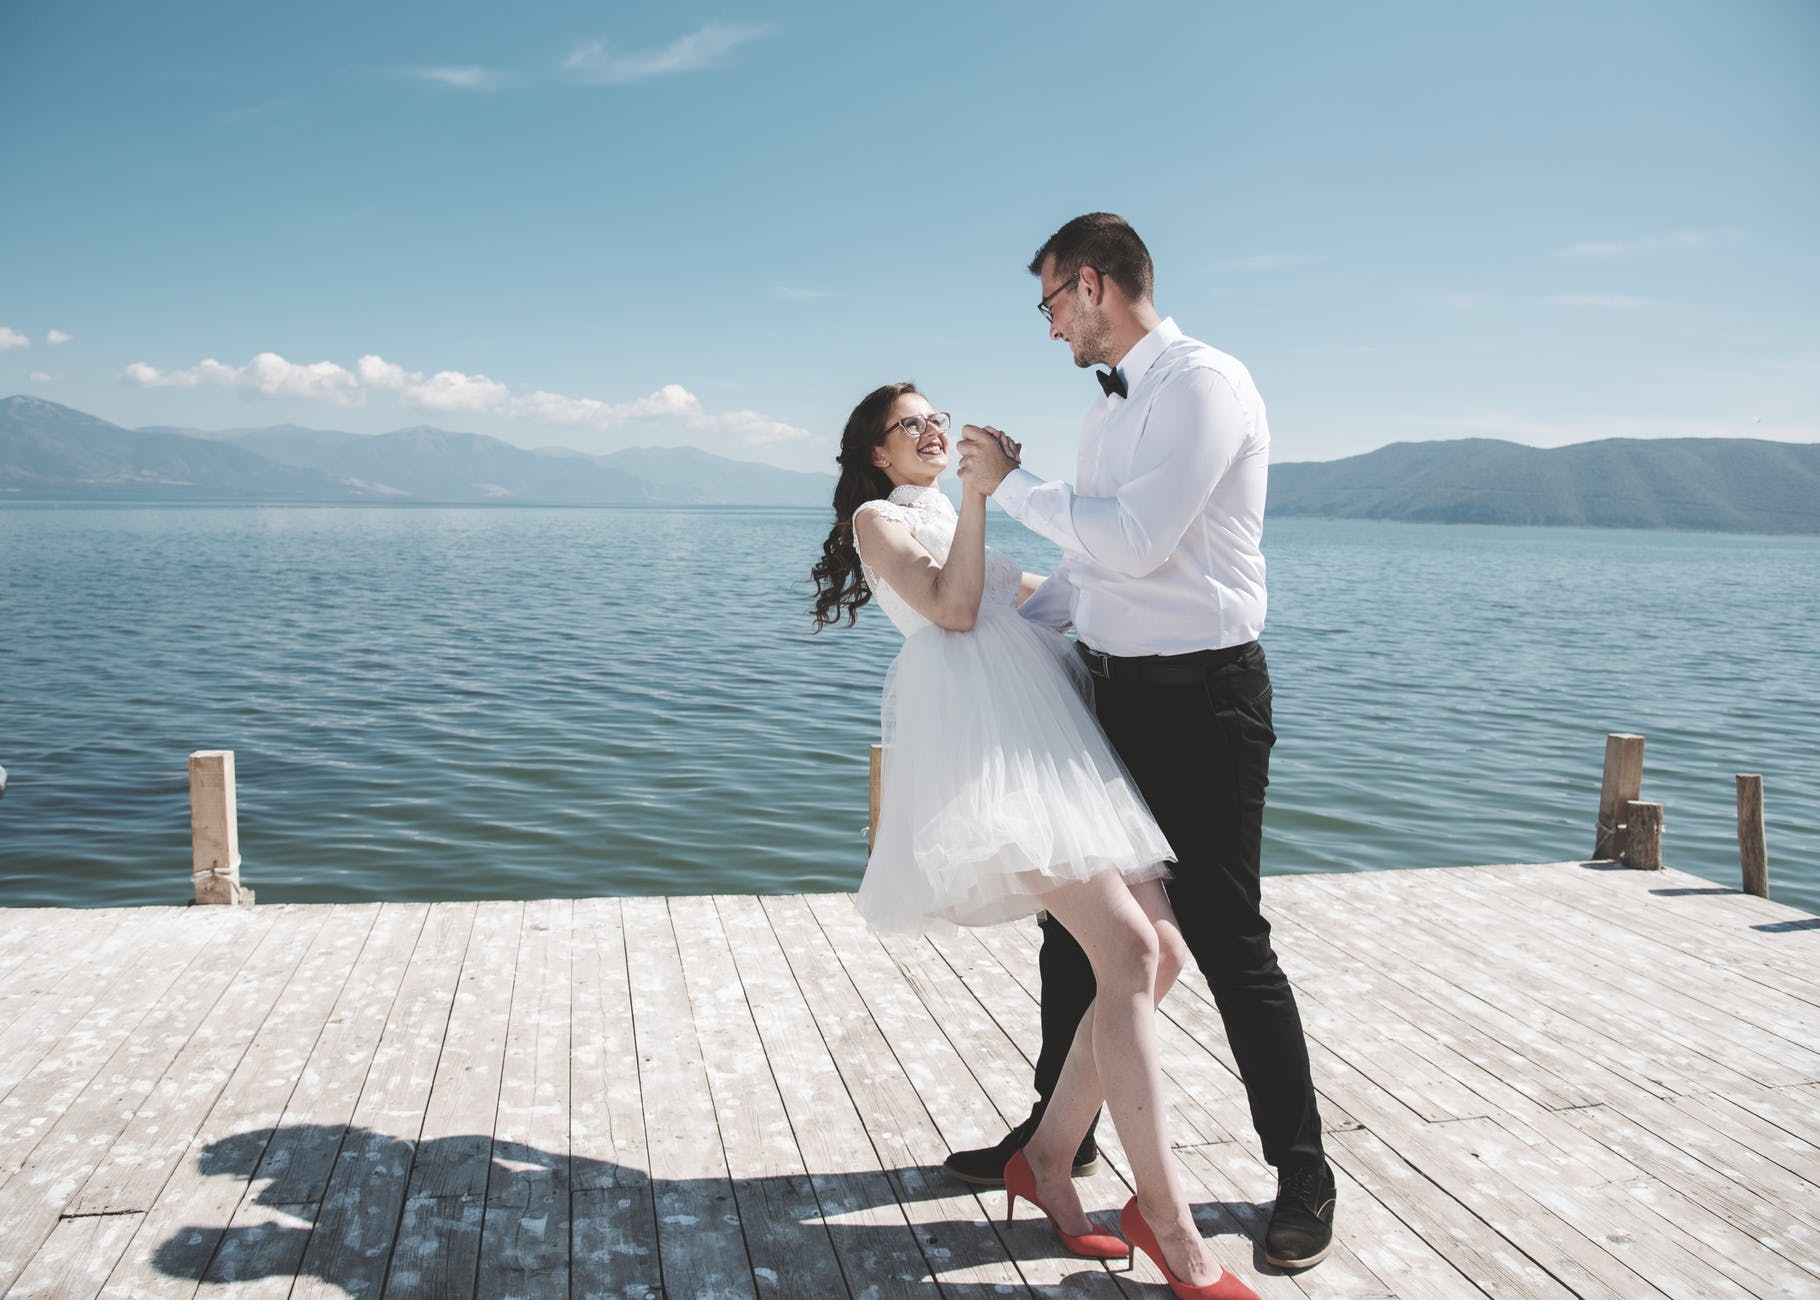 man and woman dancing on dock